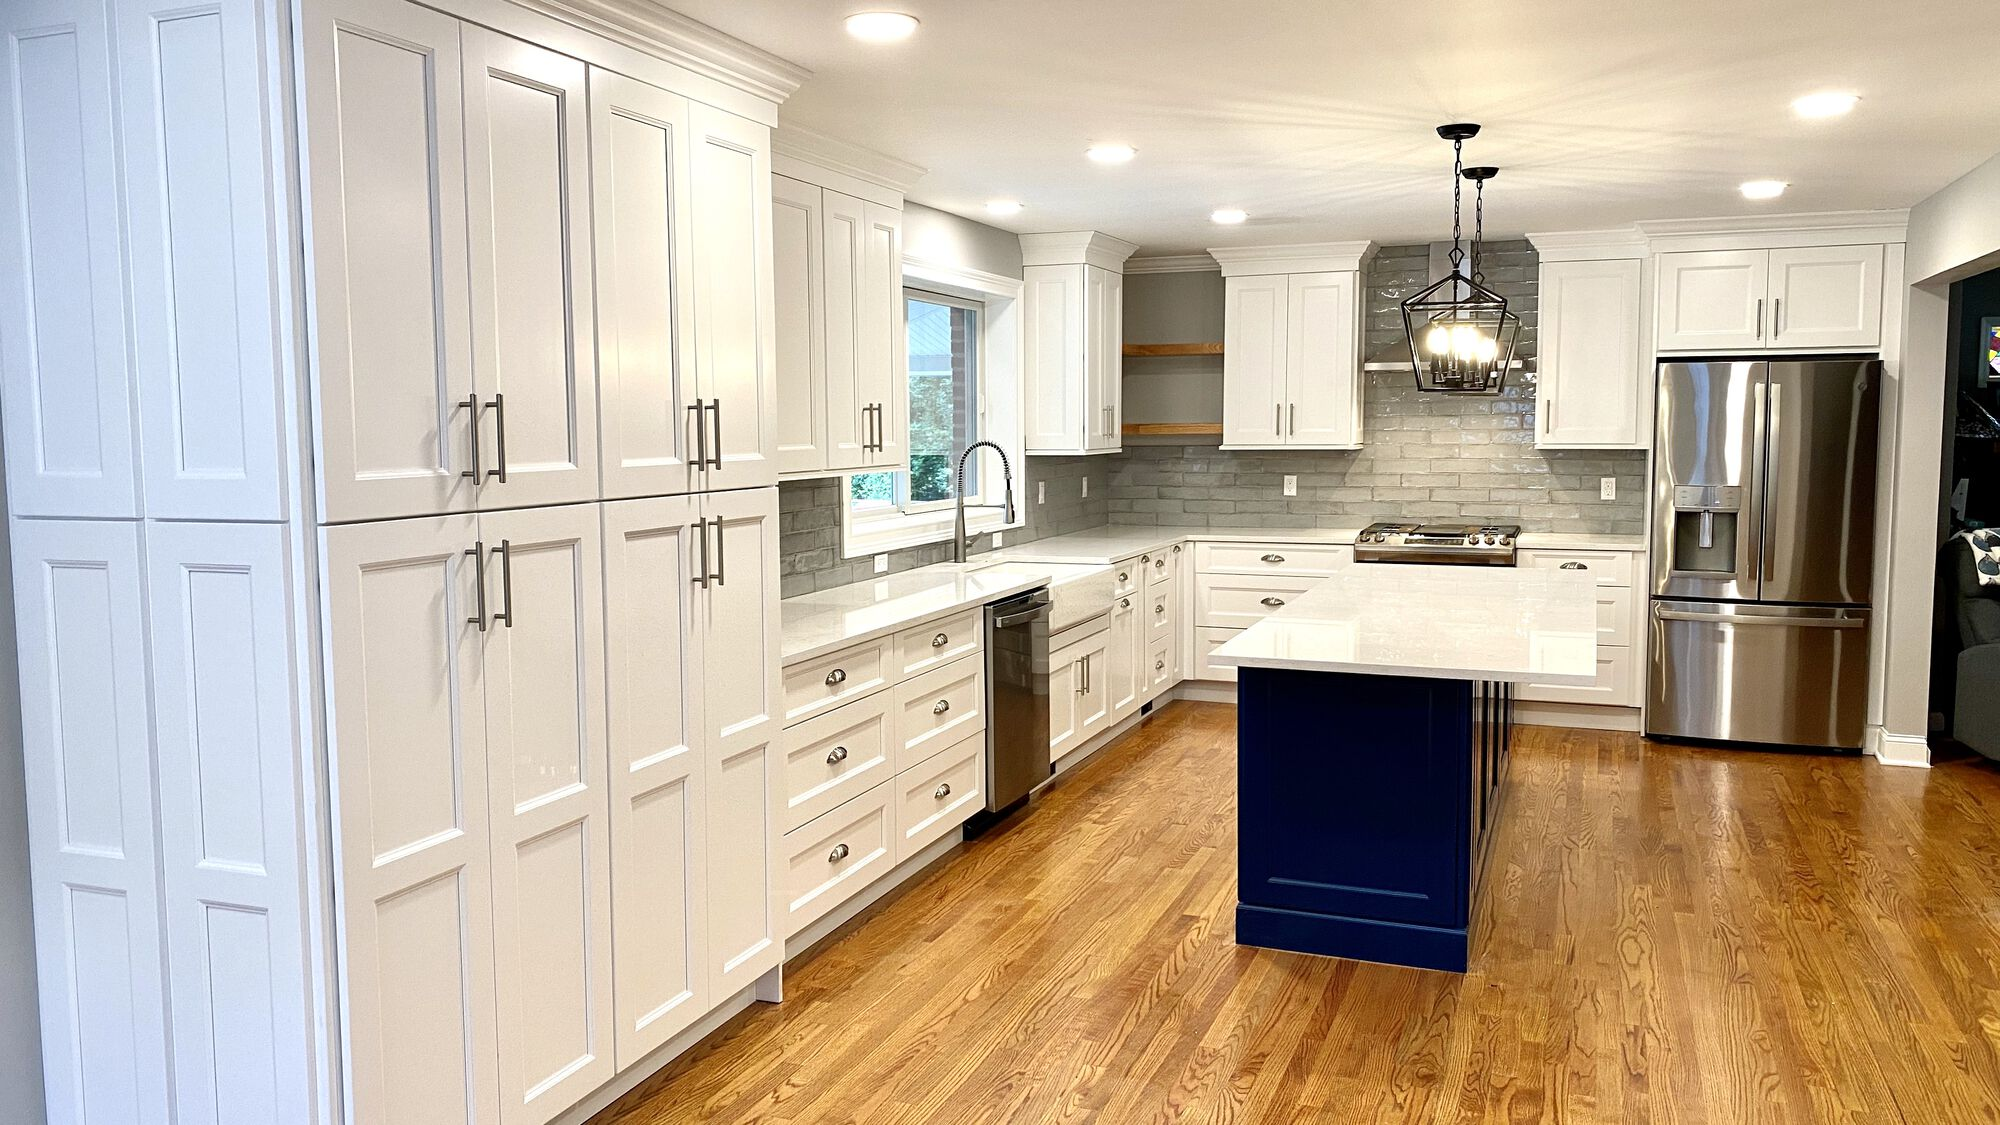 Kitchen Remodeling including Removing Wall Partitions, Oak Flooring, New Window Openings, Fabuwood cabinets, Quartz Tops, Andersen Windows in Bloomfield, Essex County NJ